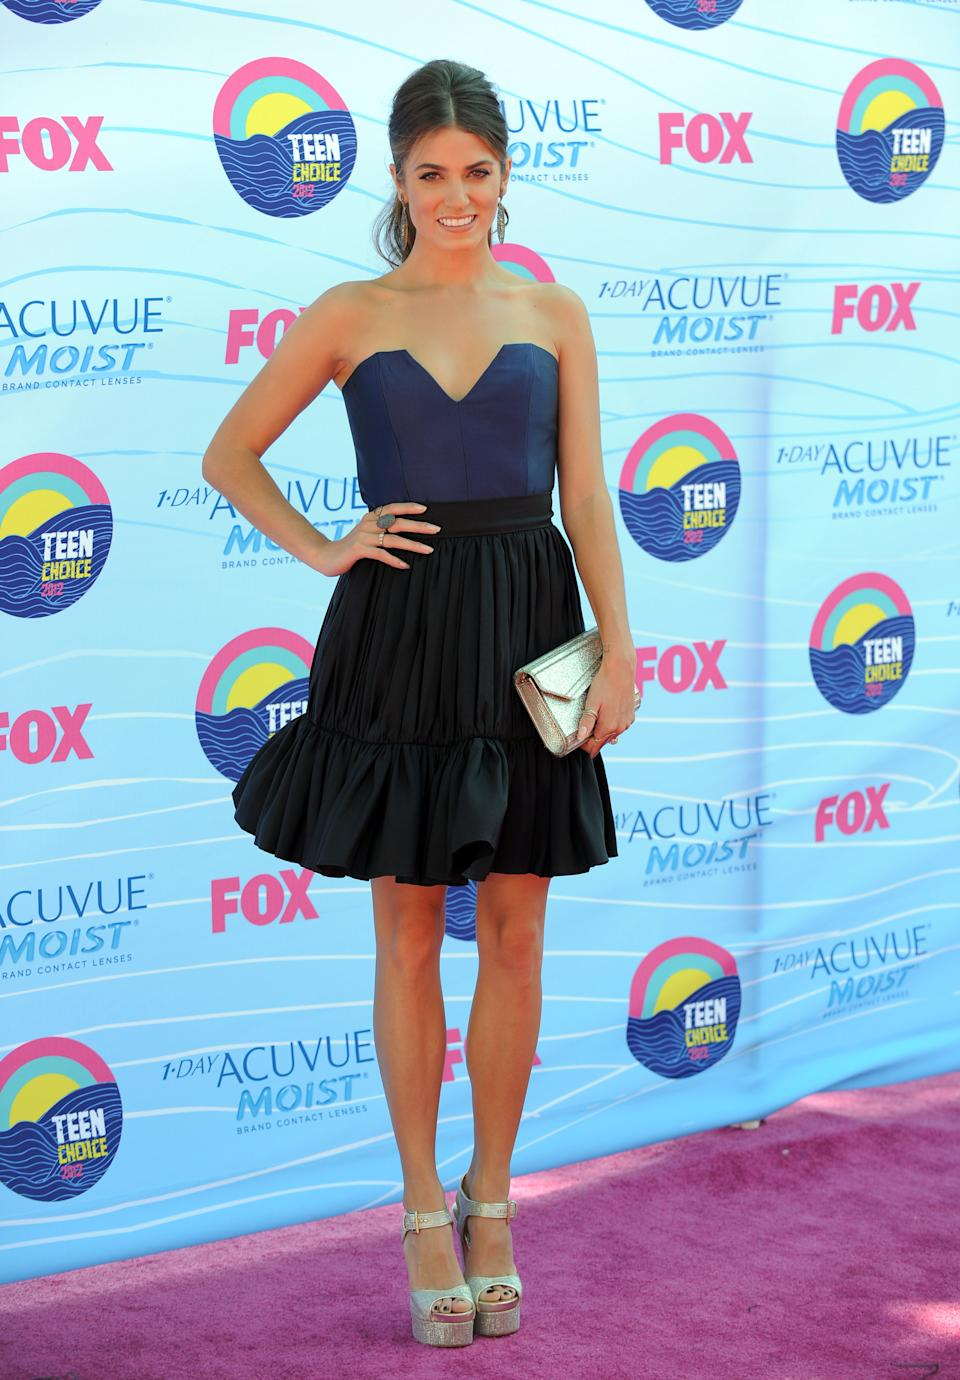 Nikki Reed arrives at the Teen Choice Awards on Sunday, July 22, 2012, in Universal City, Calif. (Photo by Jordan Strauss/Invision/AP)